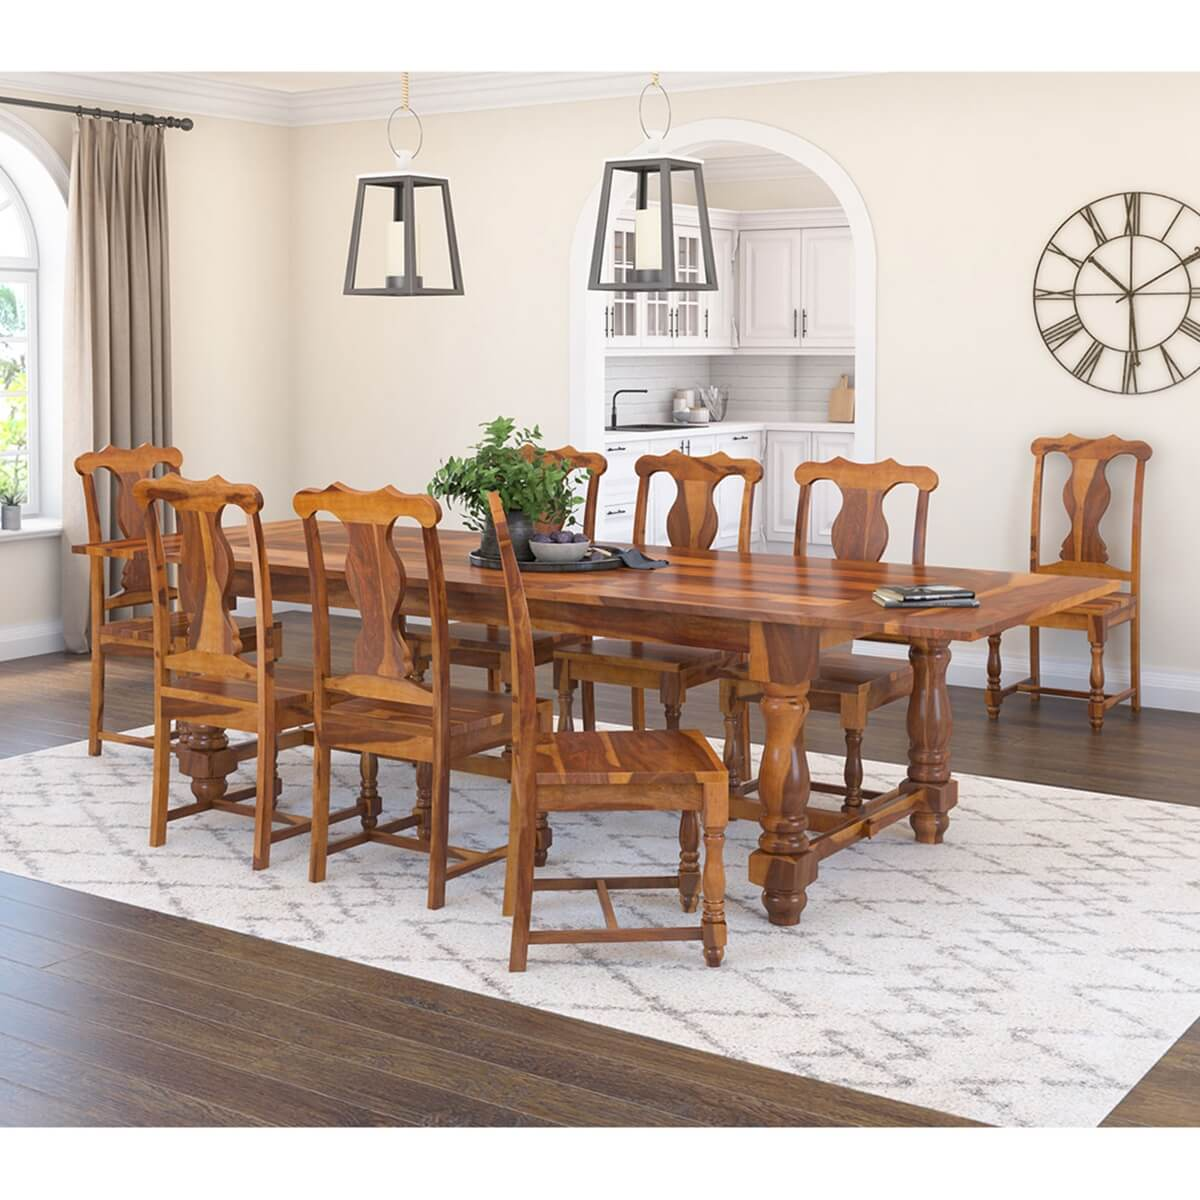 Rustic solid wood dining table chair set furniture w for Breakfast sets furniture